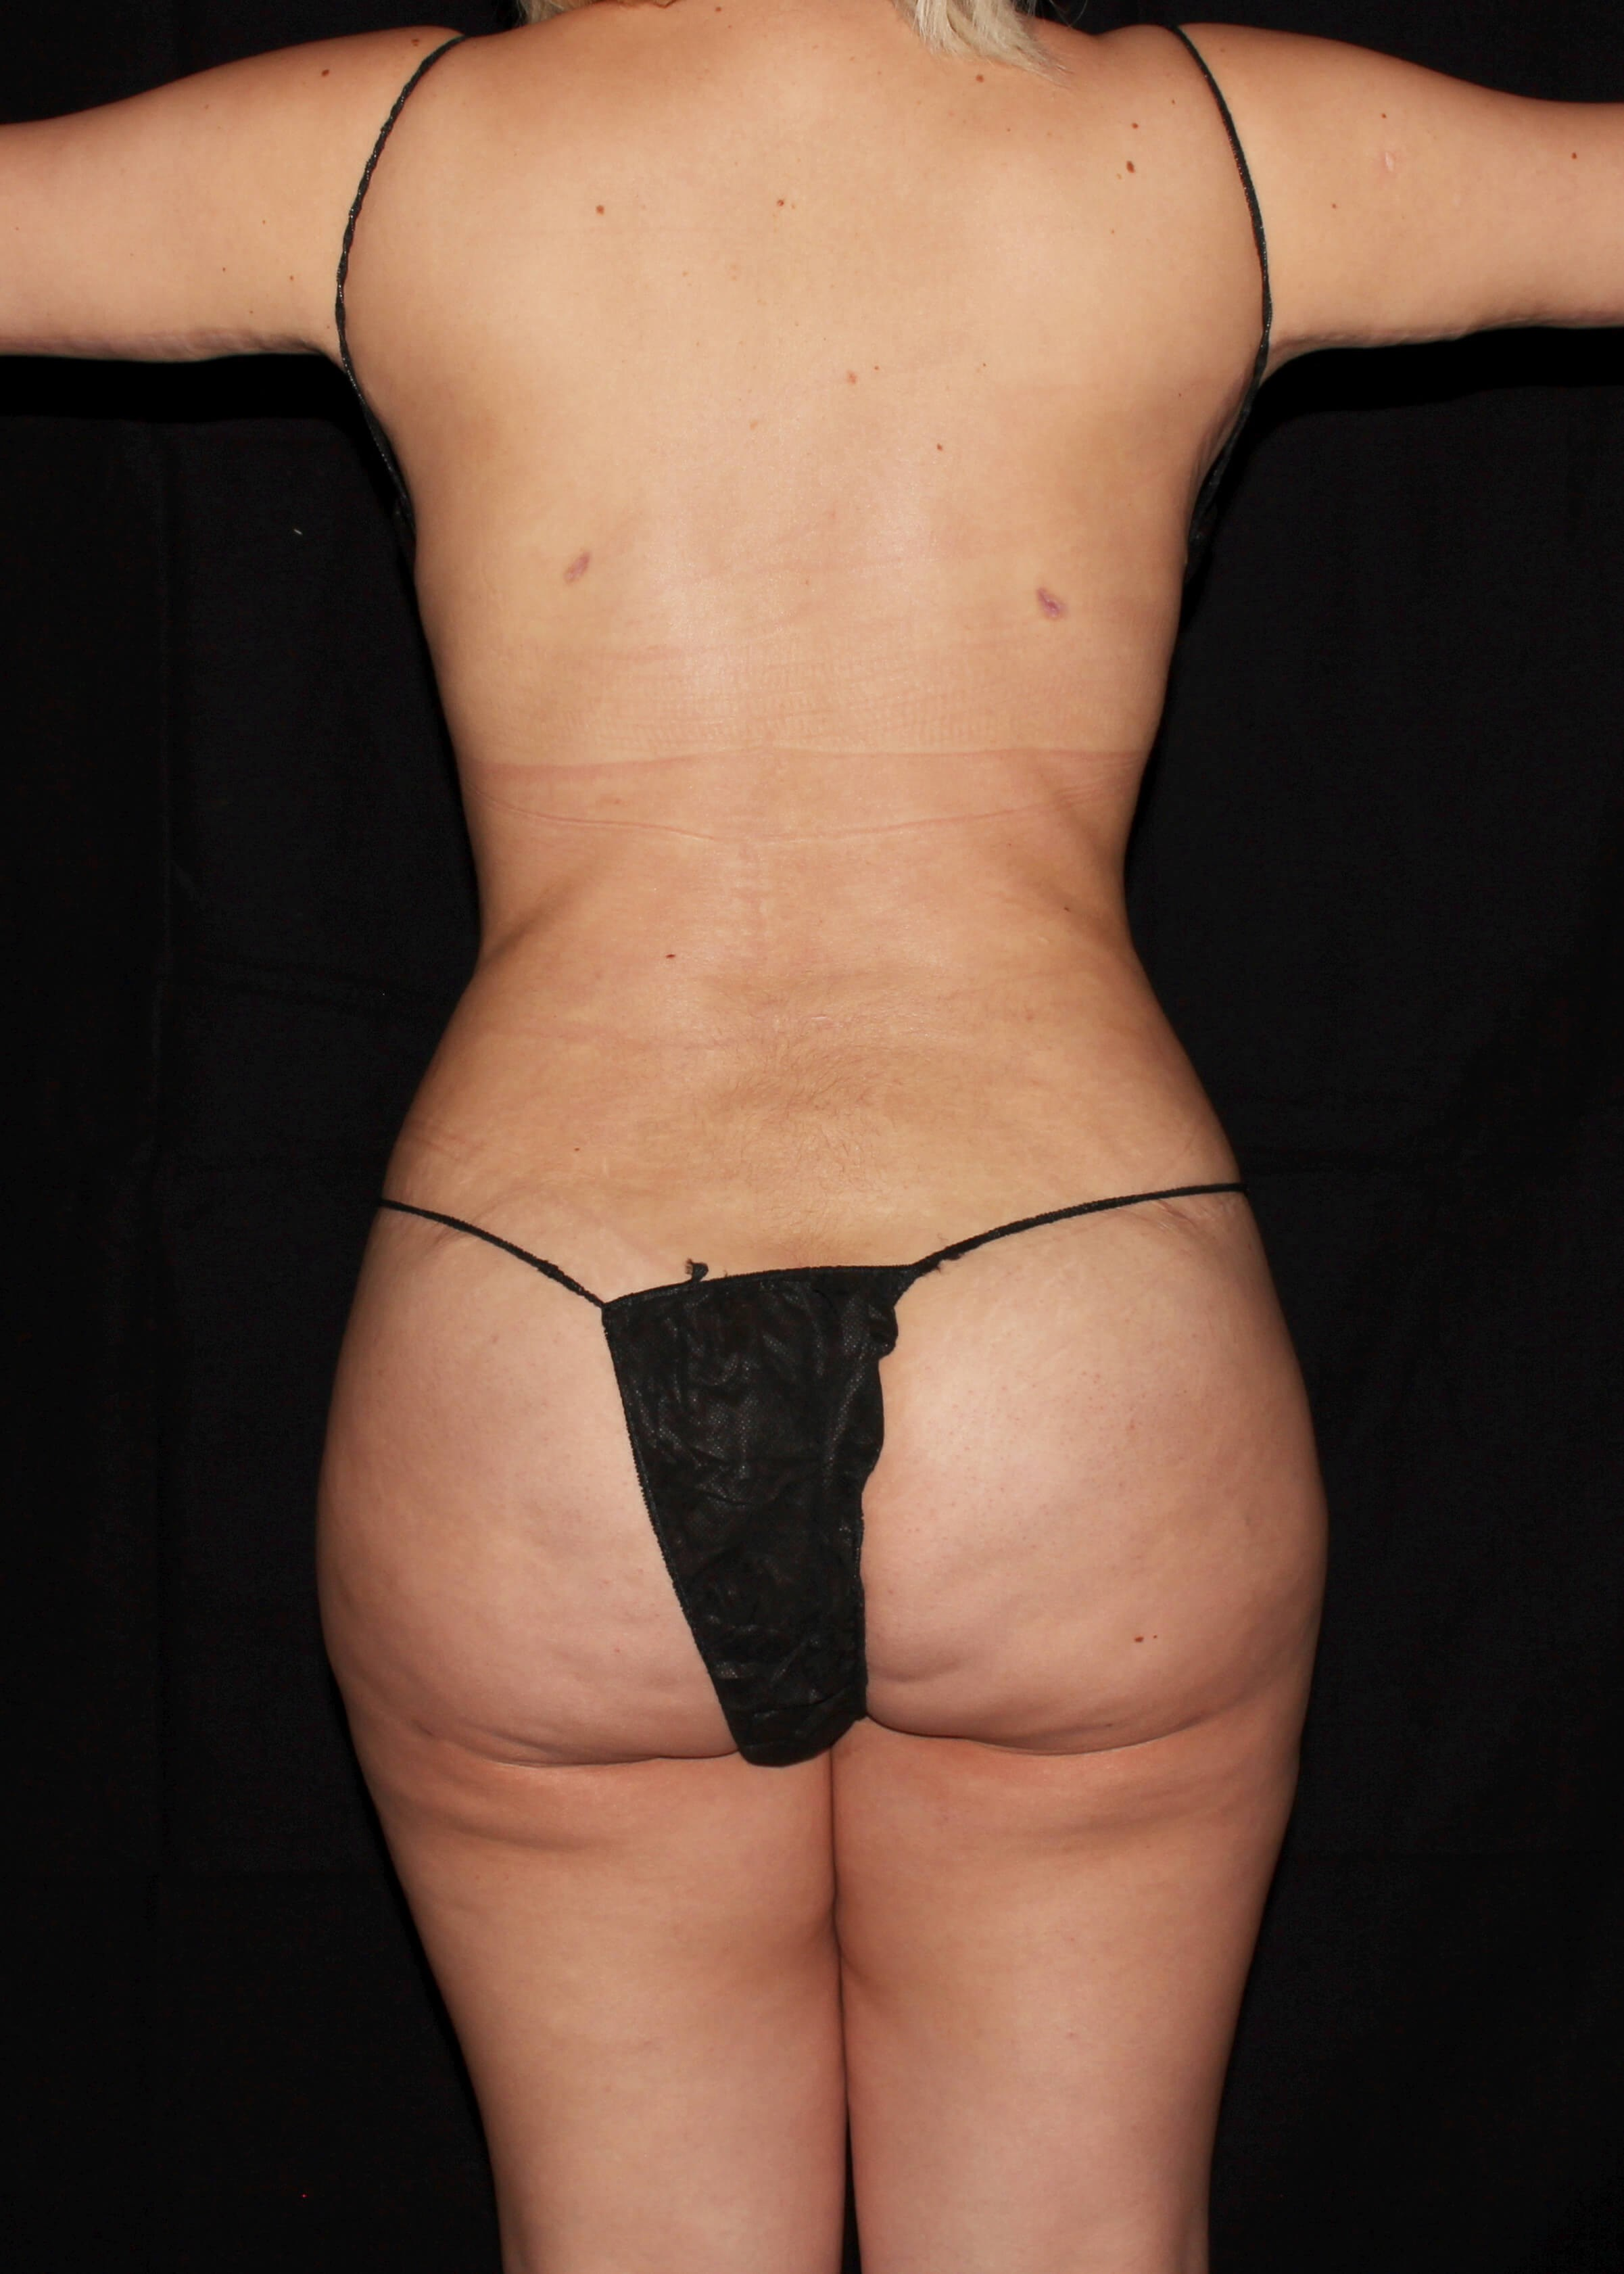 After Liposuction - Back View